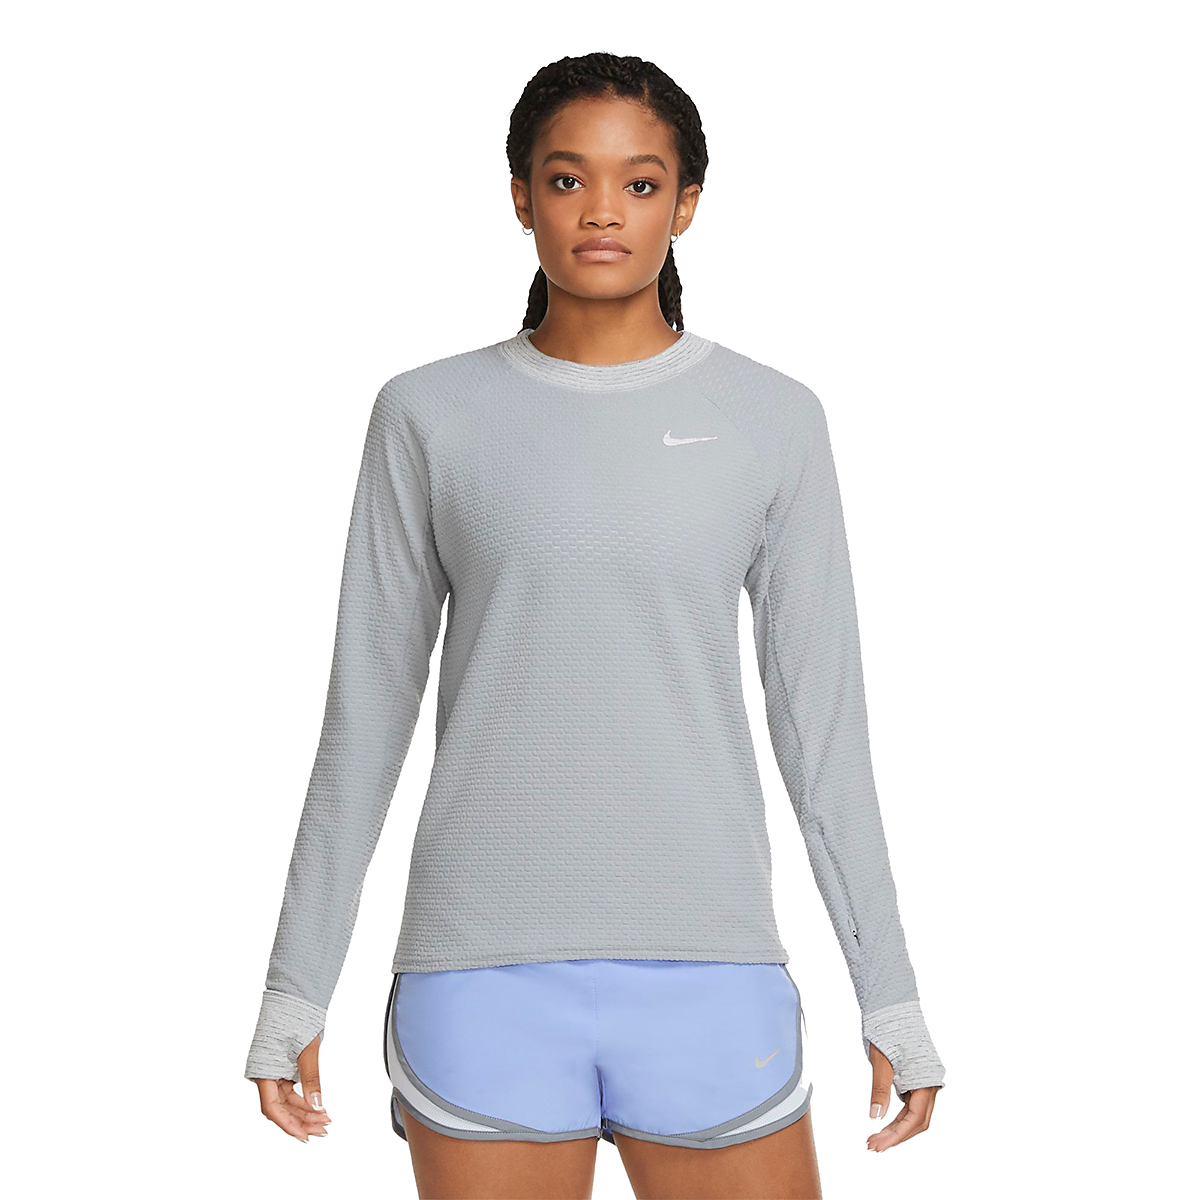 Women's Nike Sphere Crew Long Sleeve Shirt - Color: Particle Grey/Reflective Silver - Size: XS, Particle Grey/Reflective Silver, large, image 3